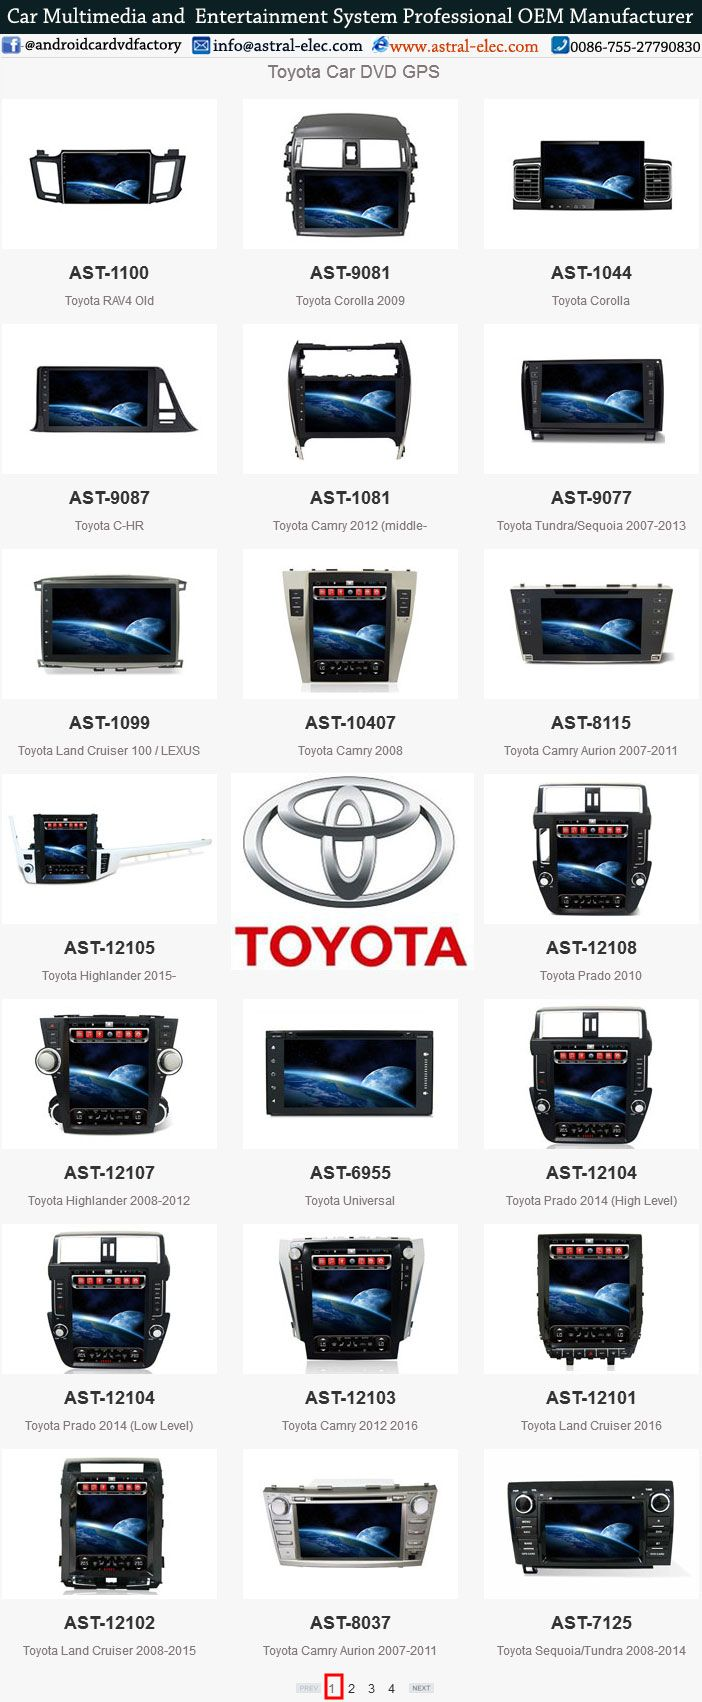 Toyota Gps Navigation System Supplier China Toyota Integrated Navigation System Professional Oem Car Stereo Systems Android Car Stereo Double Din Car Stereo